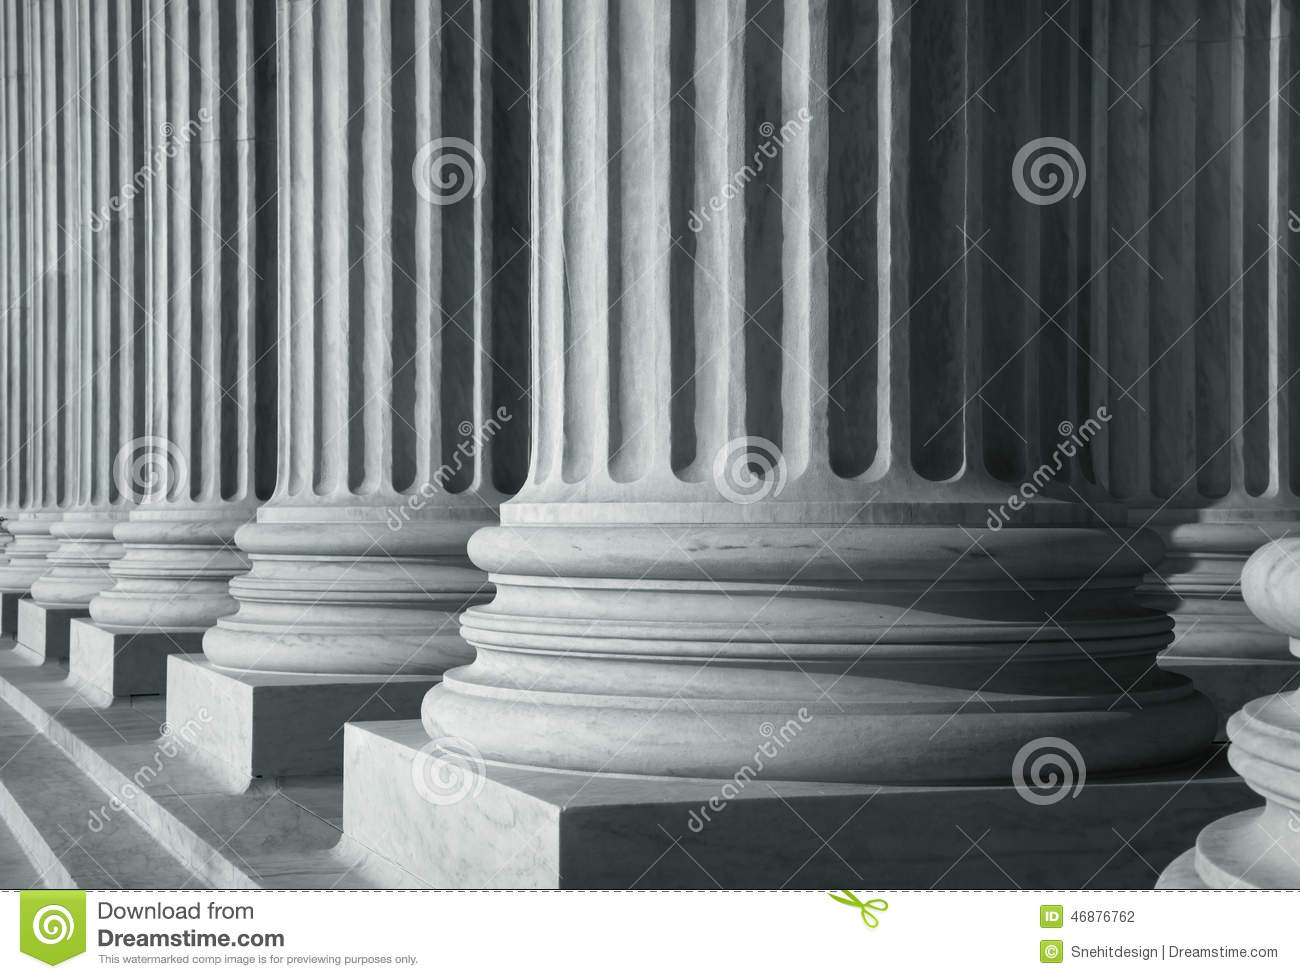 Row of tall pillars